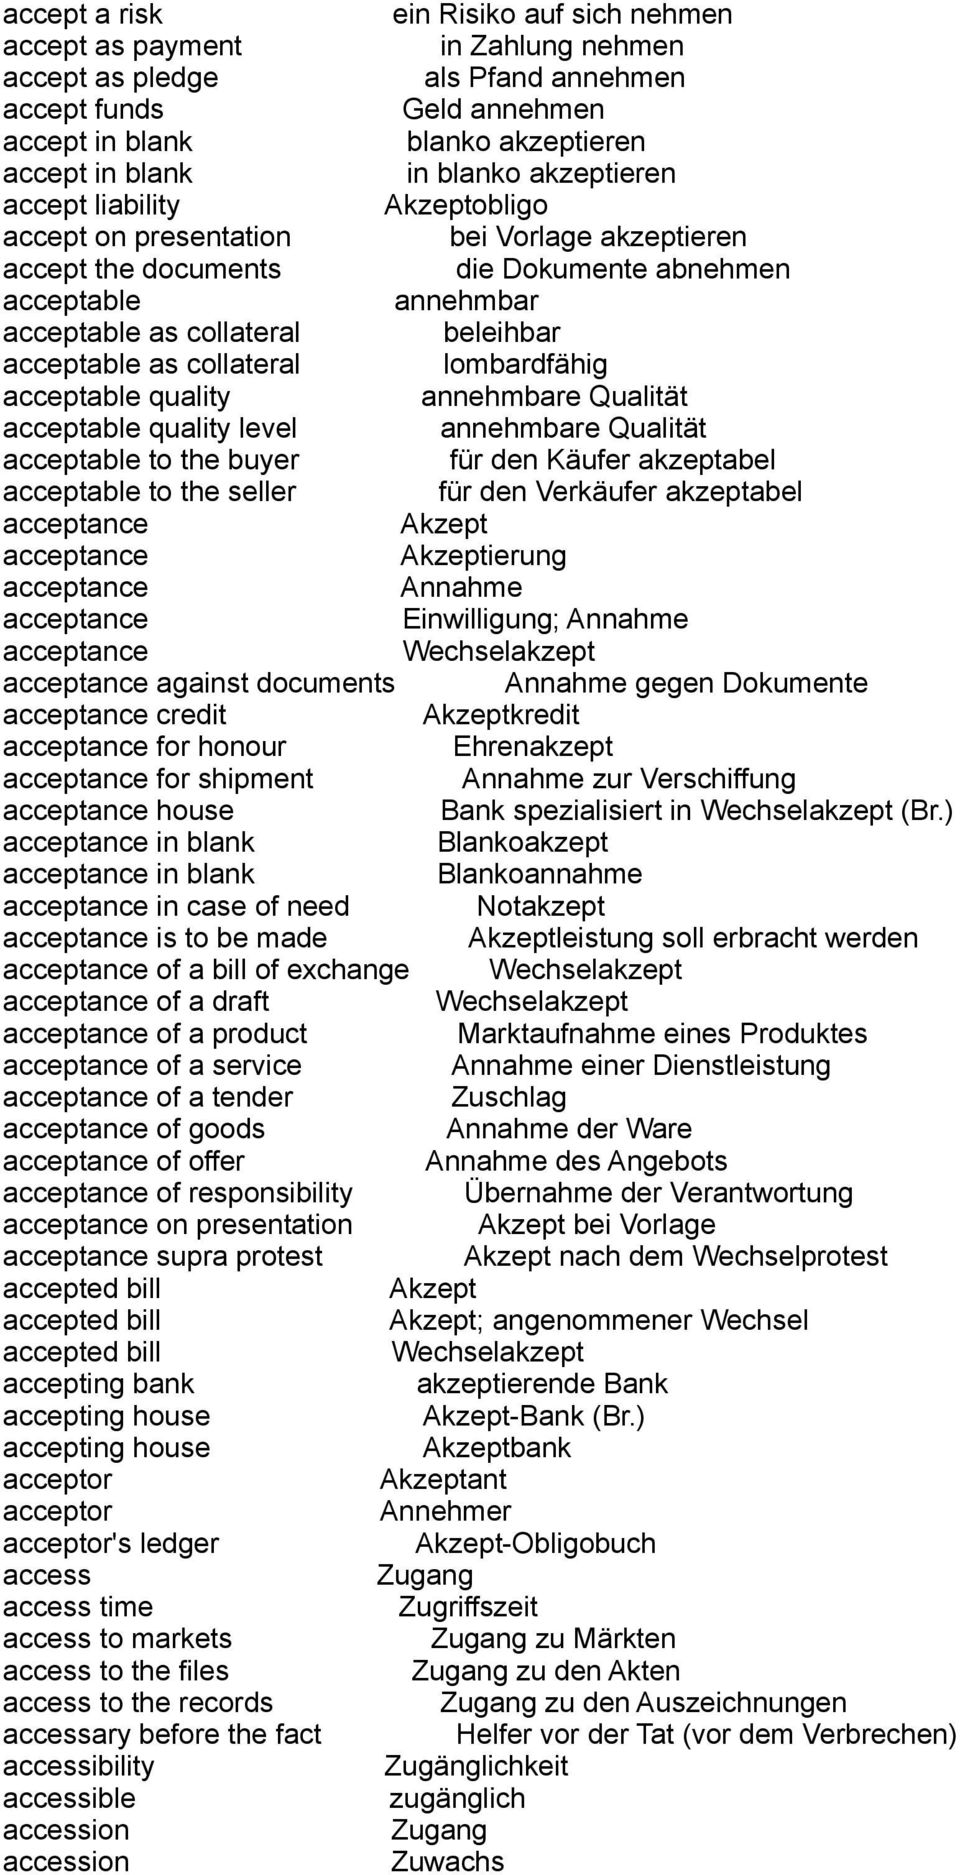 acceptable as collateral lombardfähig acceptable quality annehmbare Qualität acceptable quality level annehmbare Qualität acceptable to the buyer für den Käufer akzeptabel acceptable to the seller